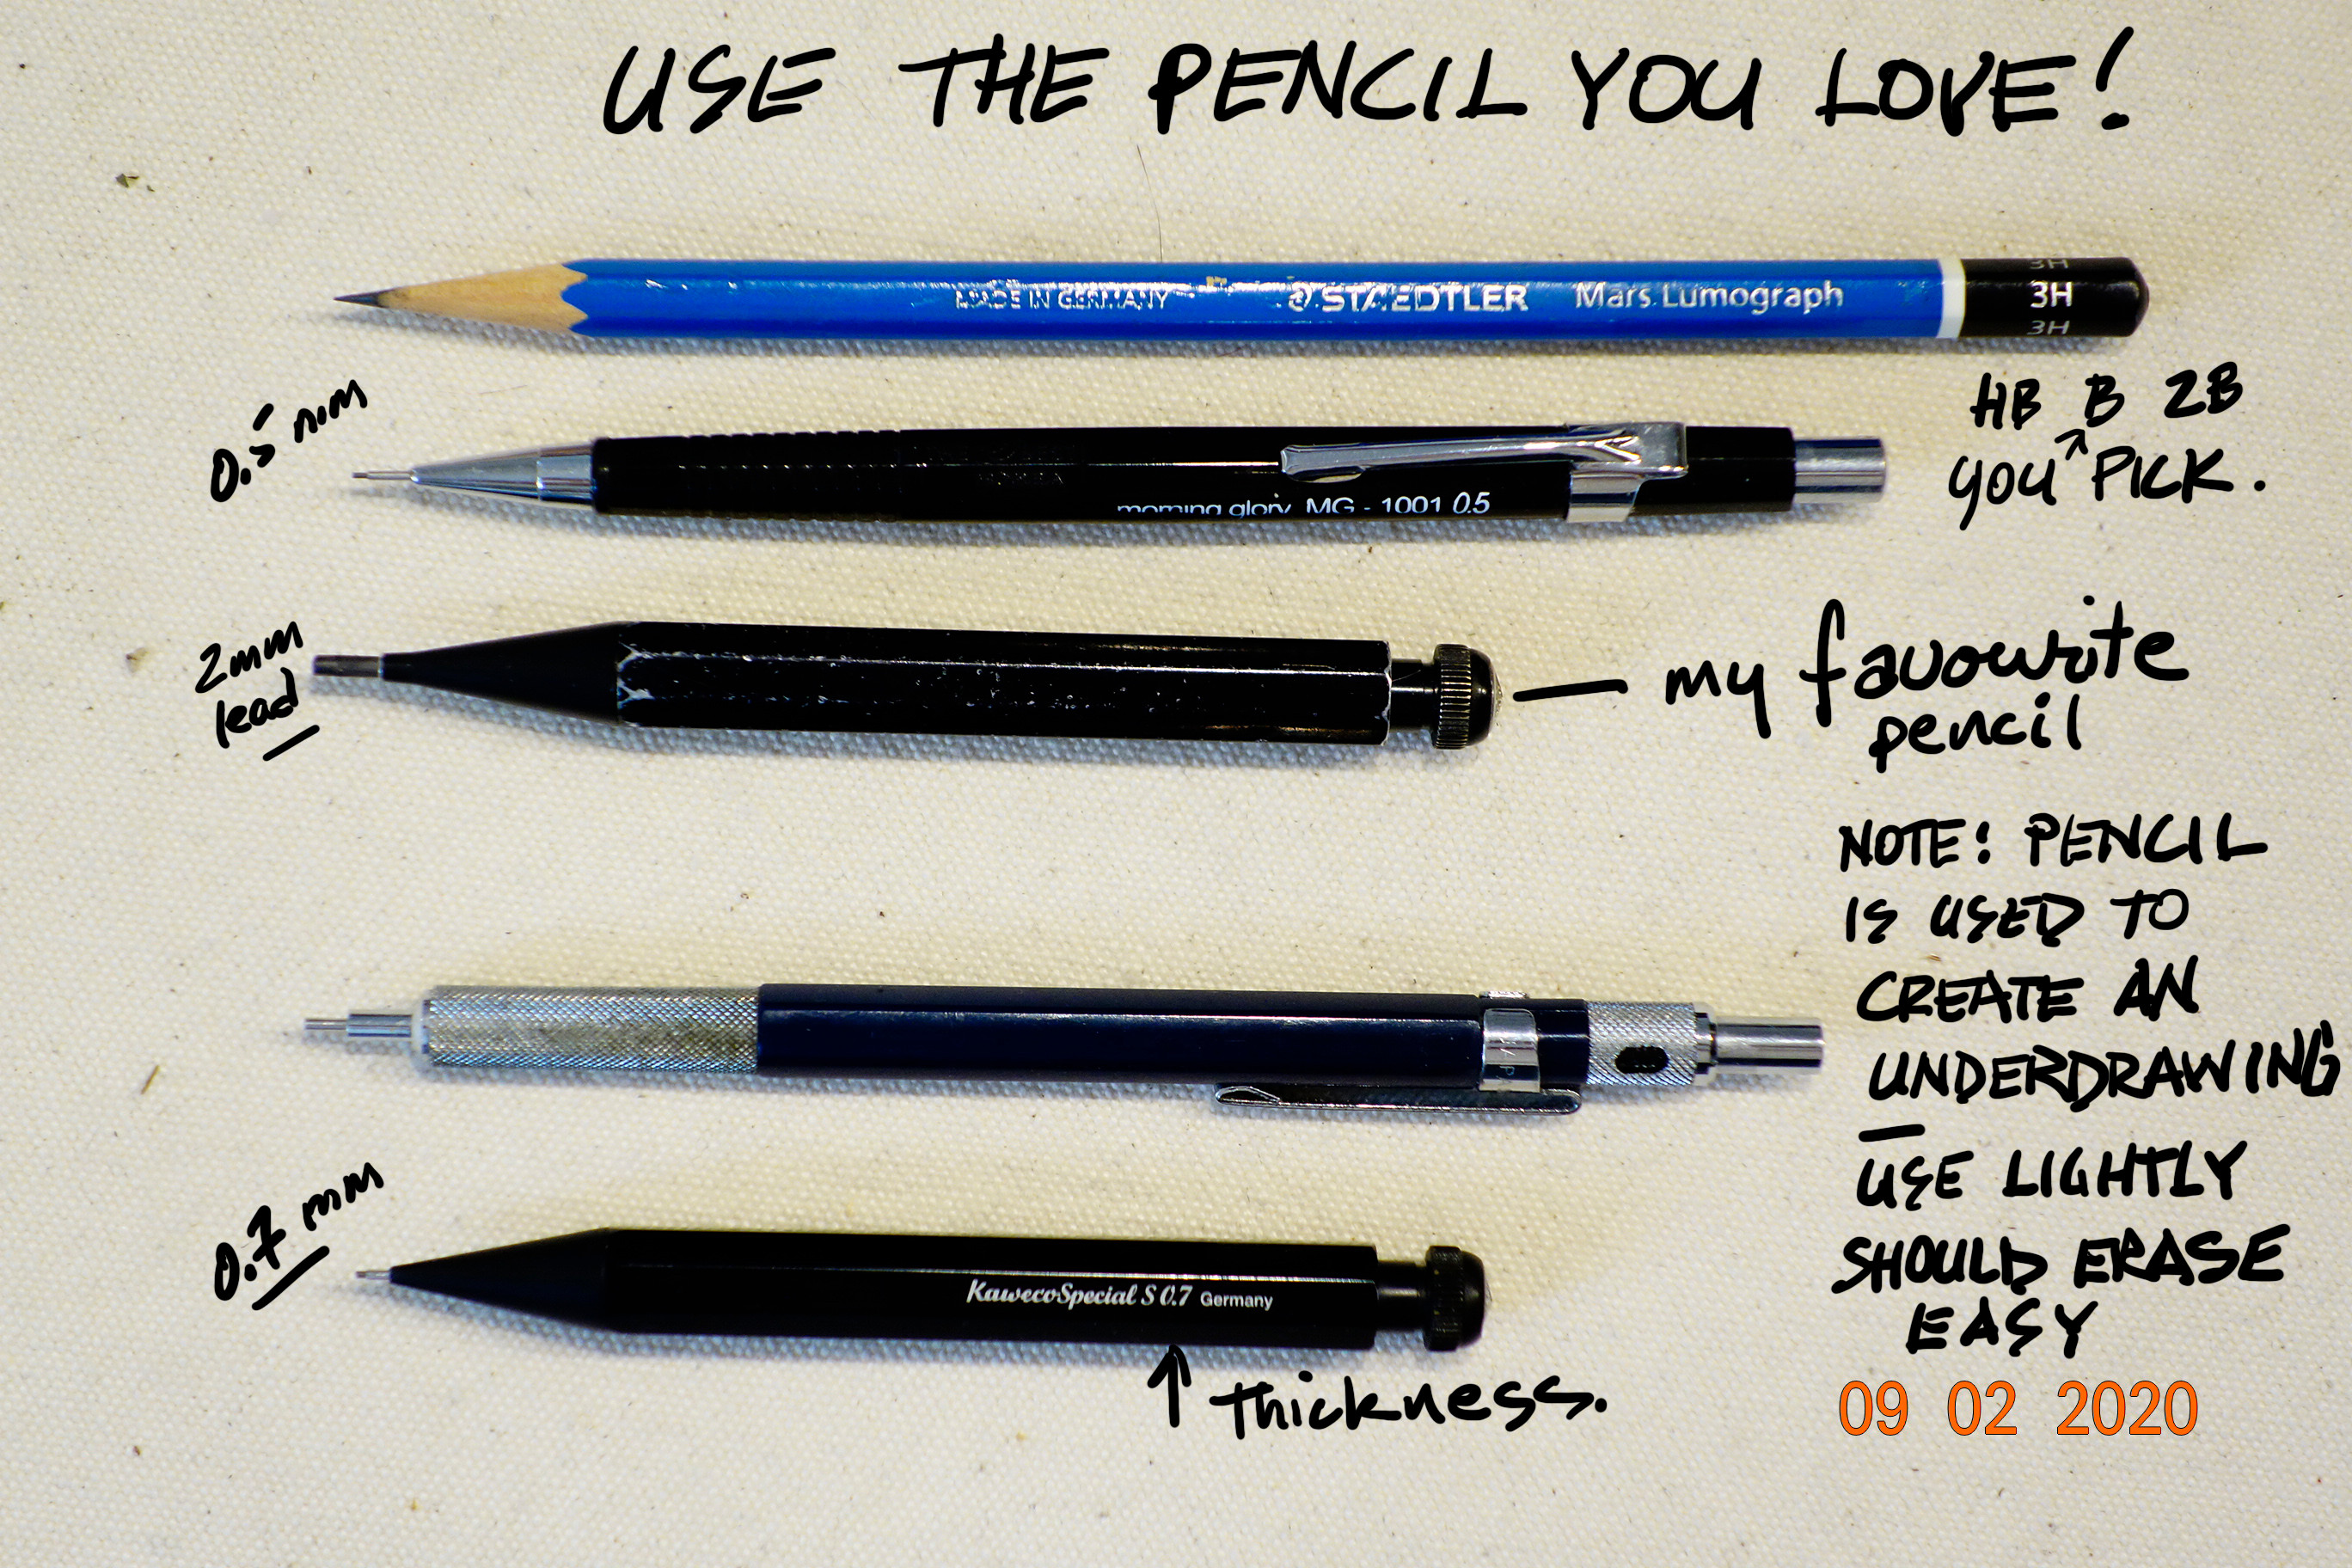 I love to use 2mm mechanical pencils. Other artist prefer to use .05 mm leads because it give you a finer line. regardless you do need a pencil of your choice to do some under drawing that after the drawing is inked you can easily erase.